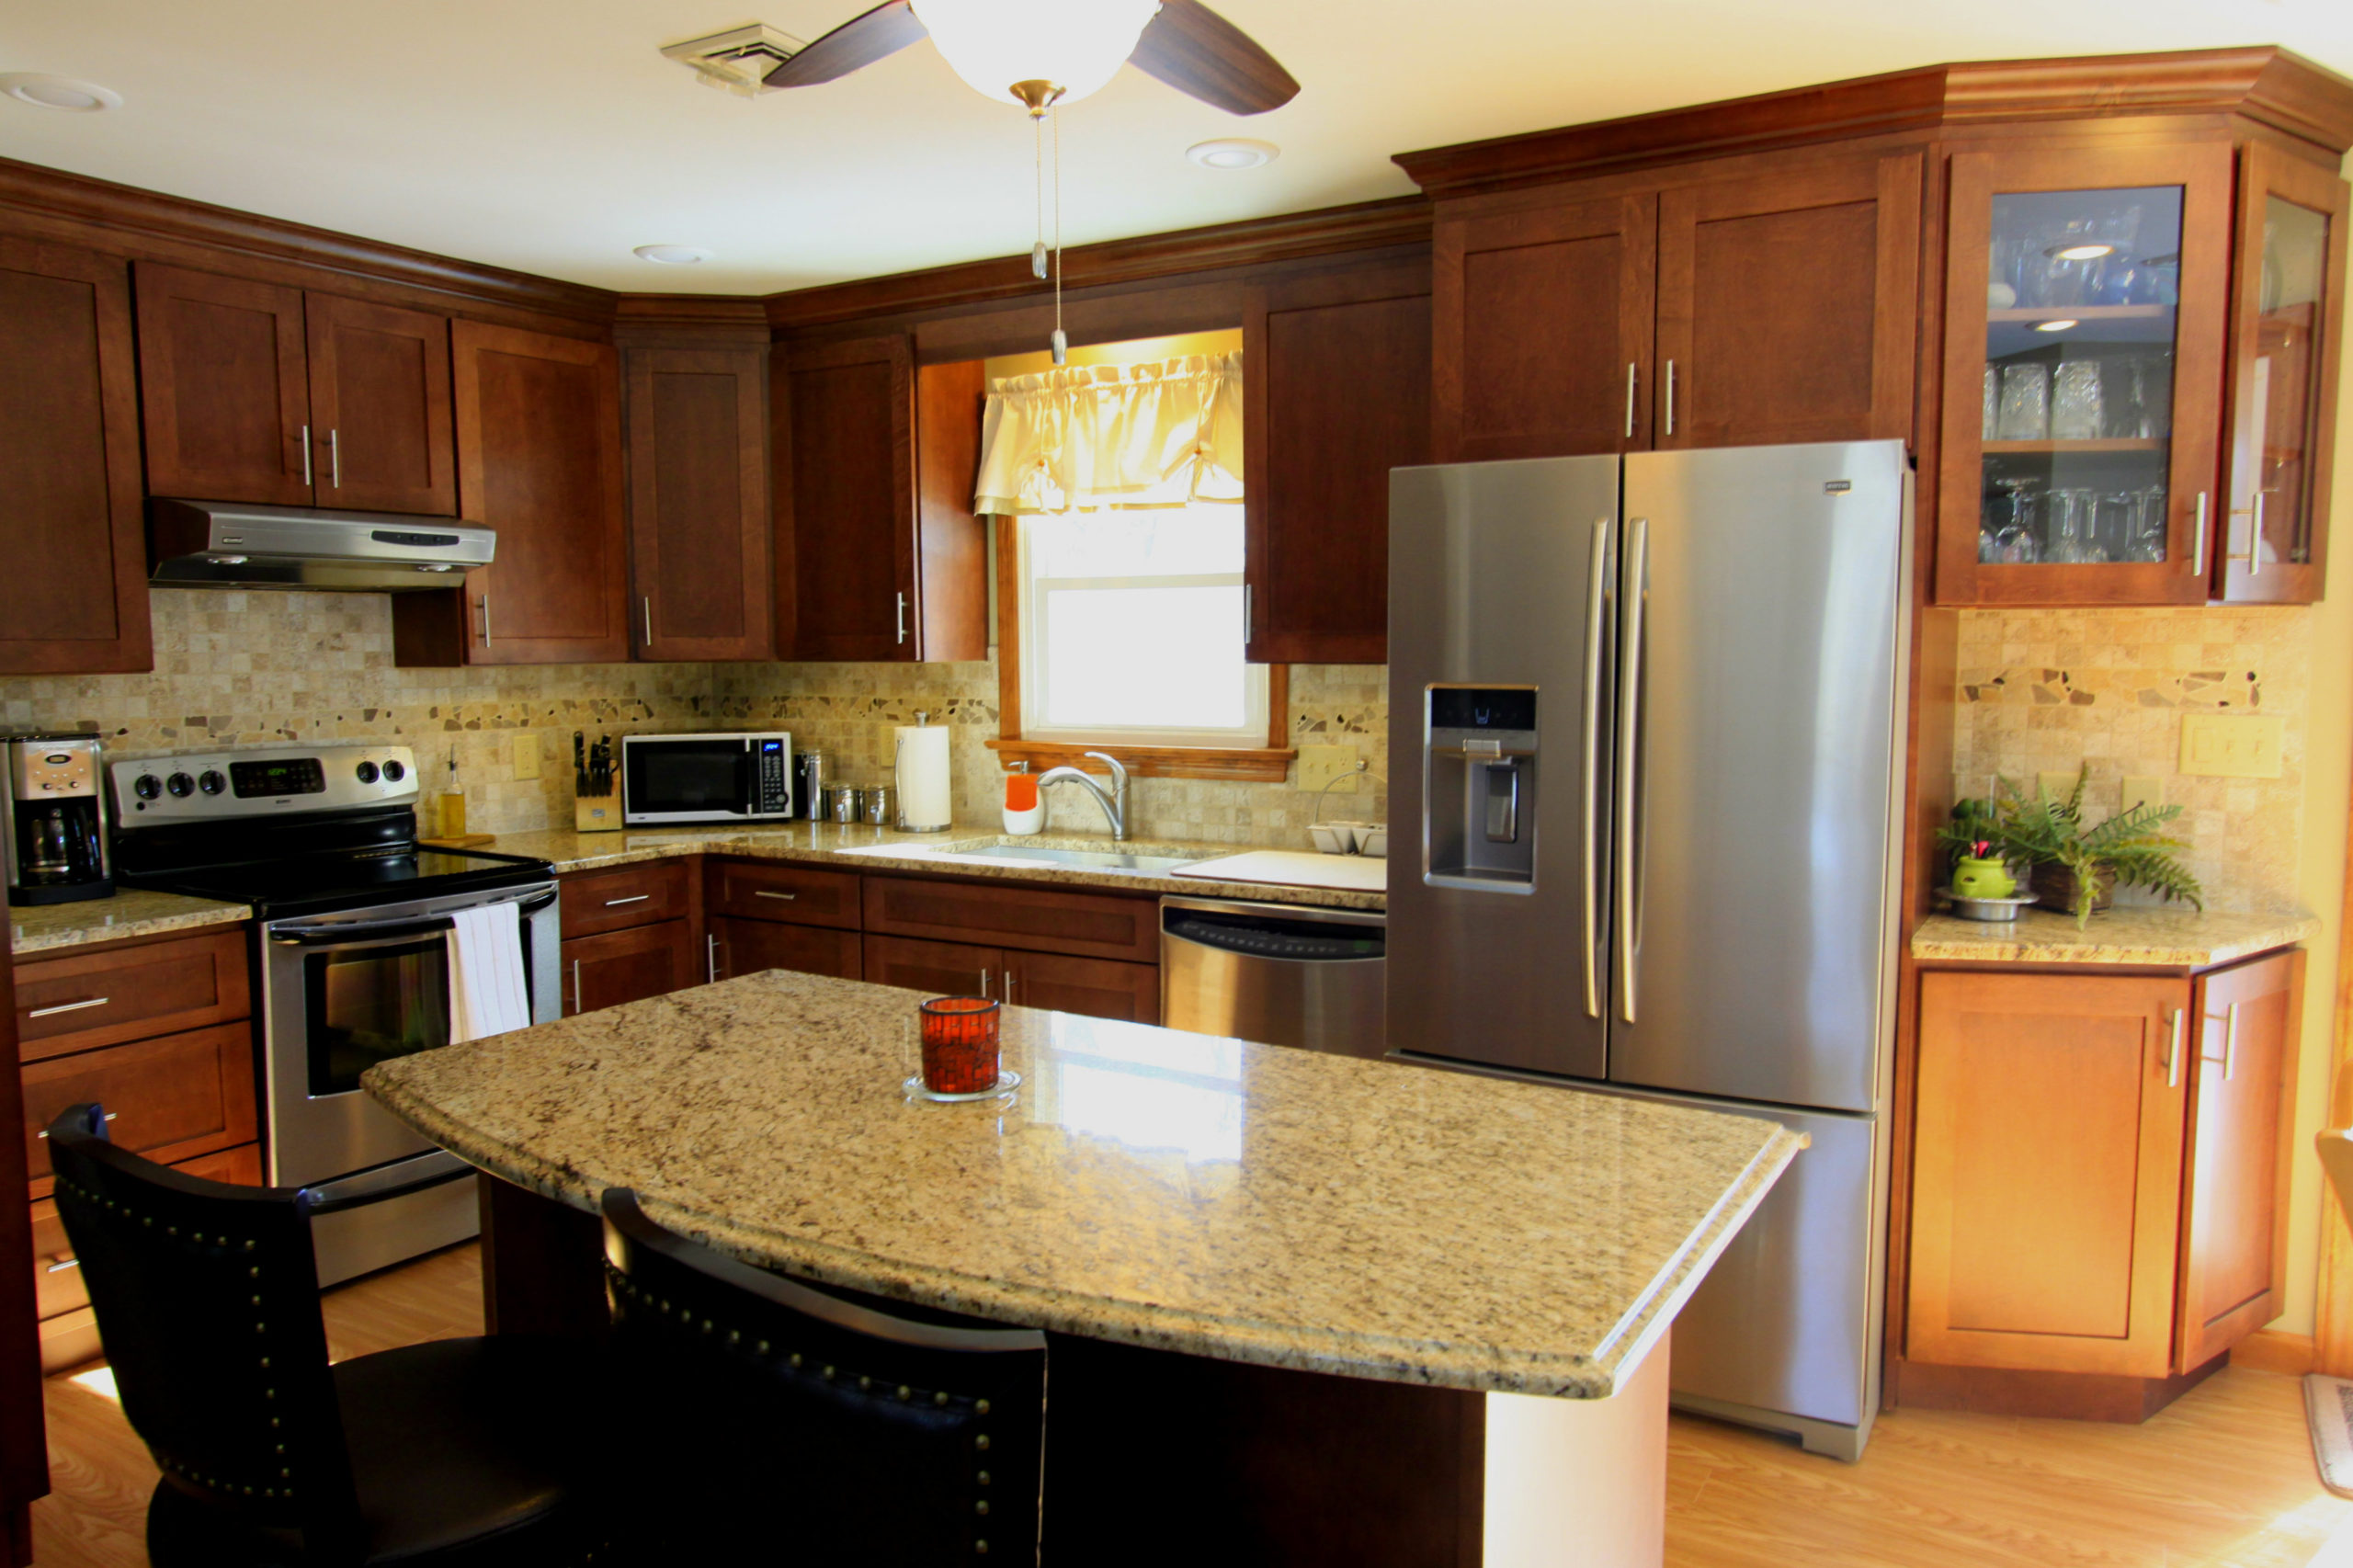 remodeling your kitchen outdoor griddle tips and benefits of shakespeare home a remodel can provide many that will not only increase the value but also create space is efficient functional for